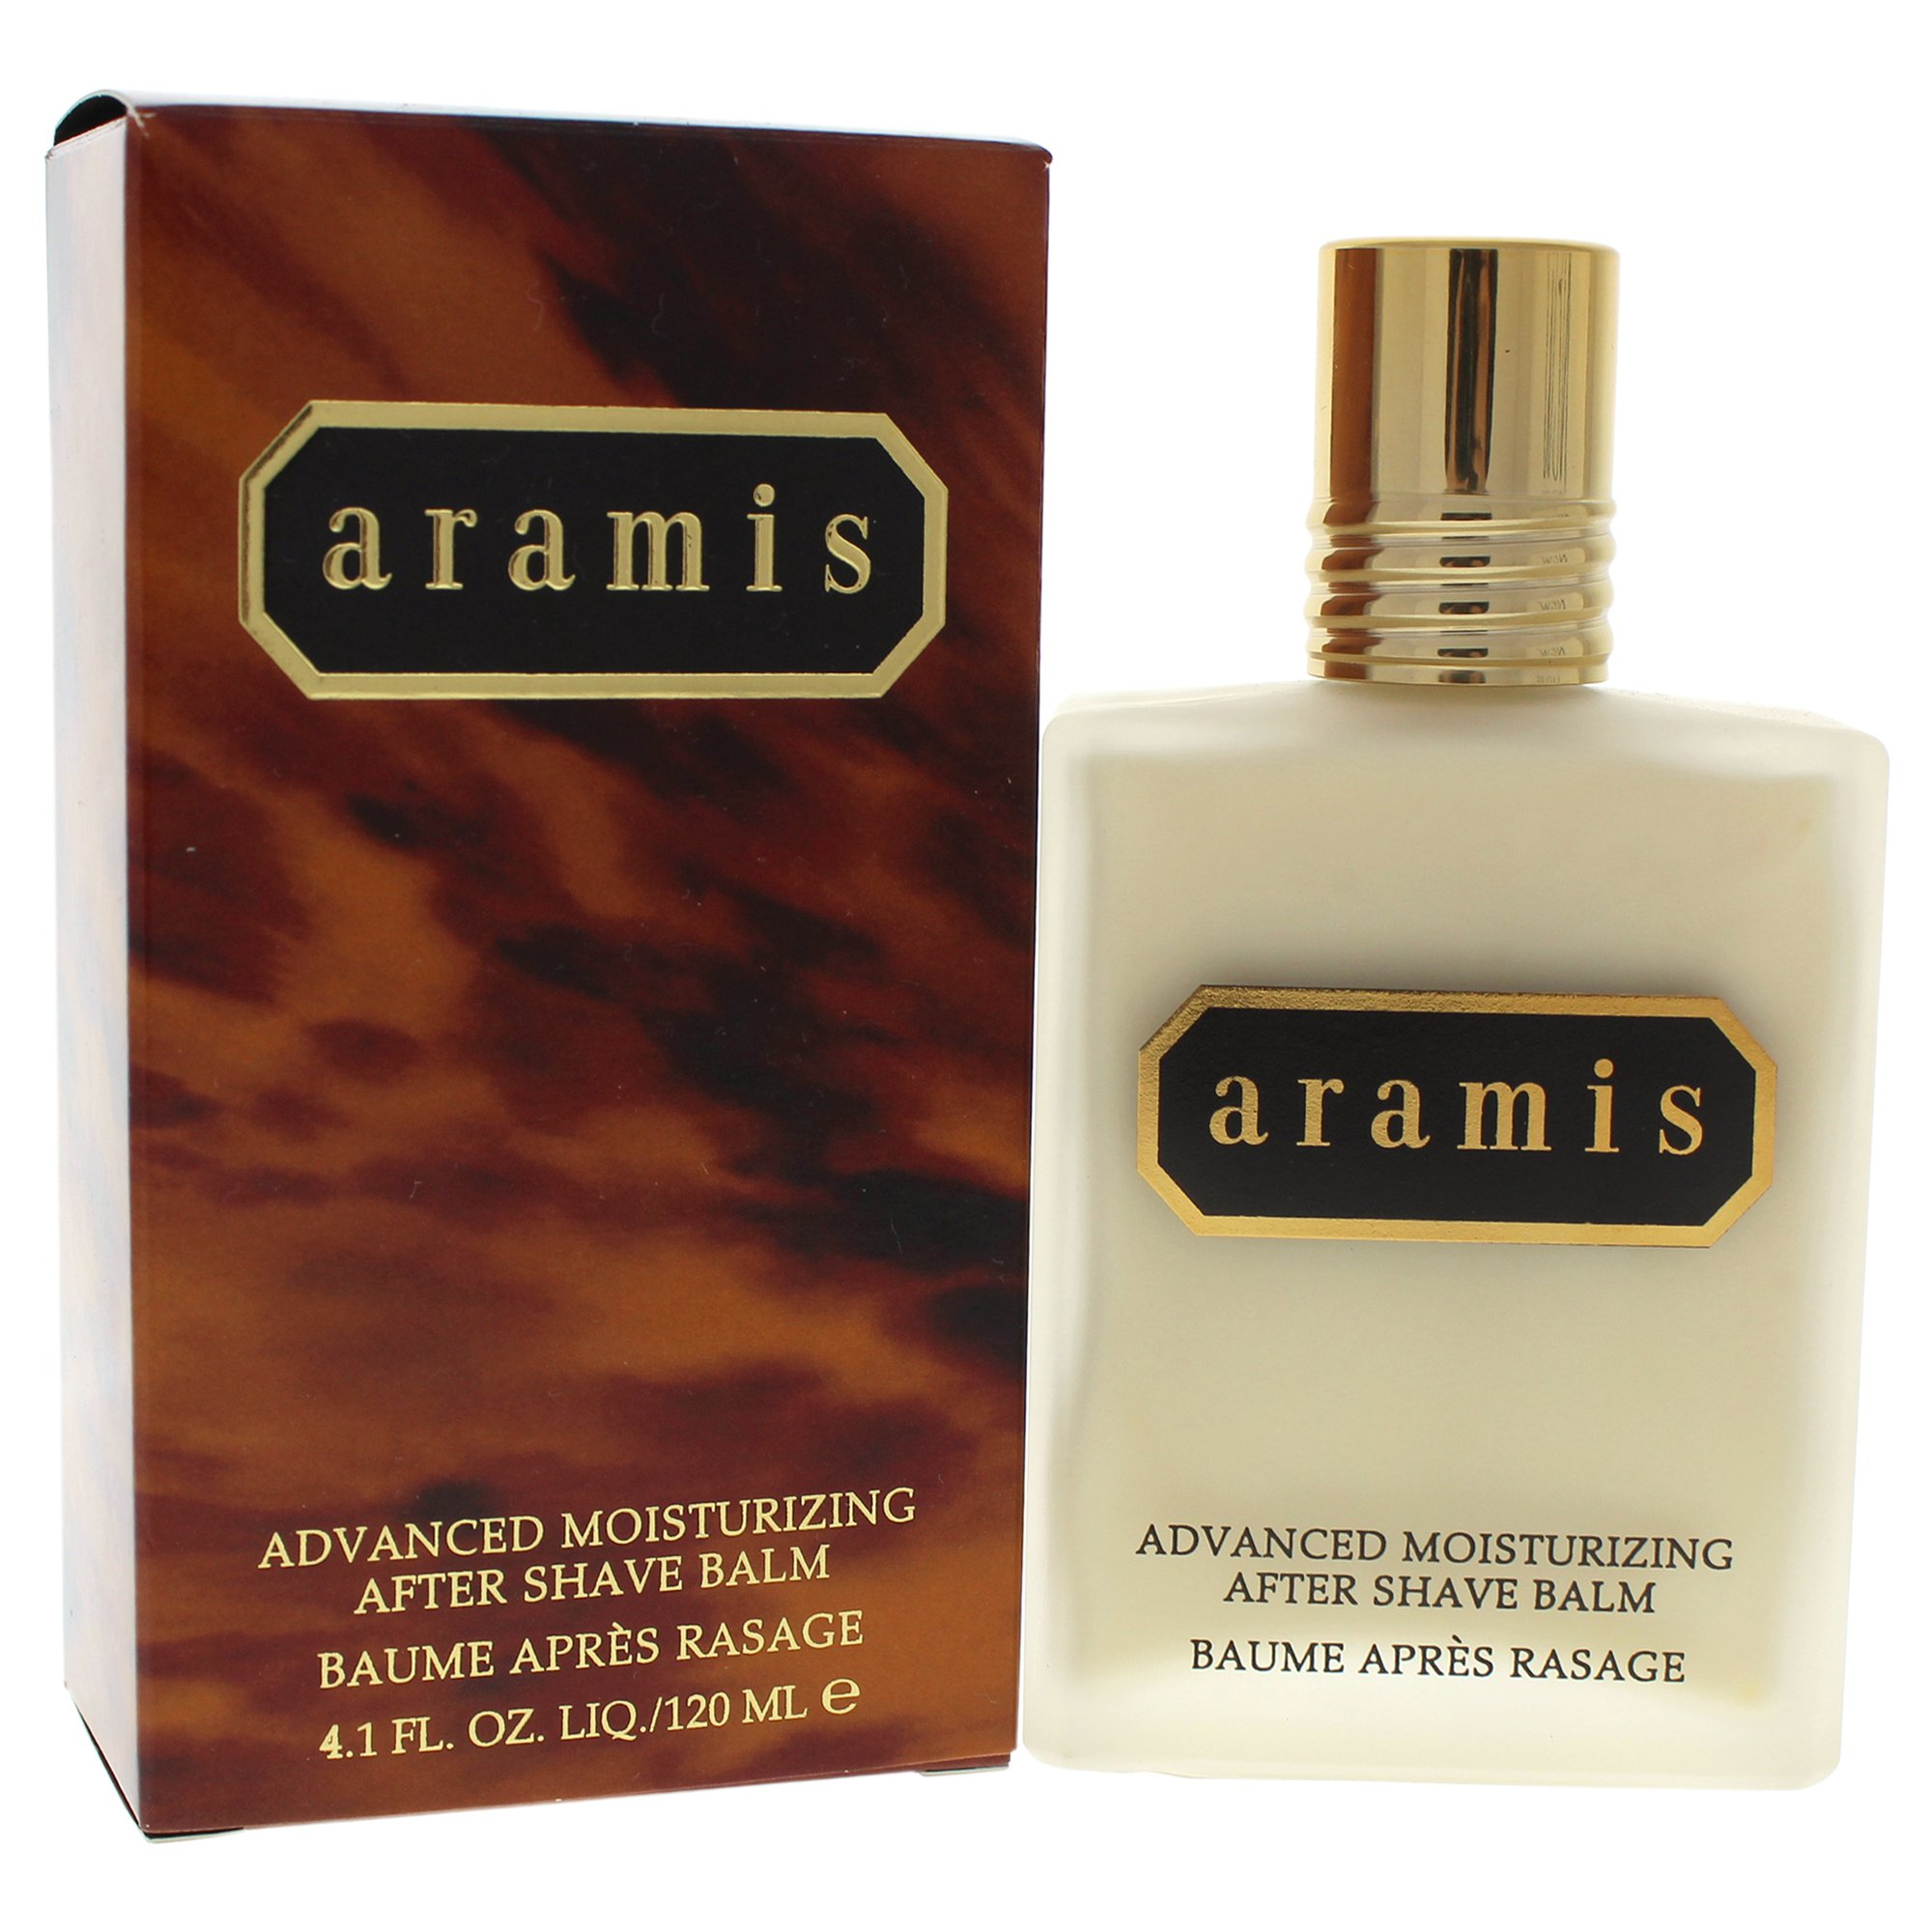 Aramis Advanced Moisturizing After Shave Balm For Men 4.10 oz by Aramis (Image #1)